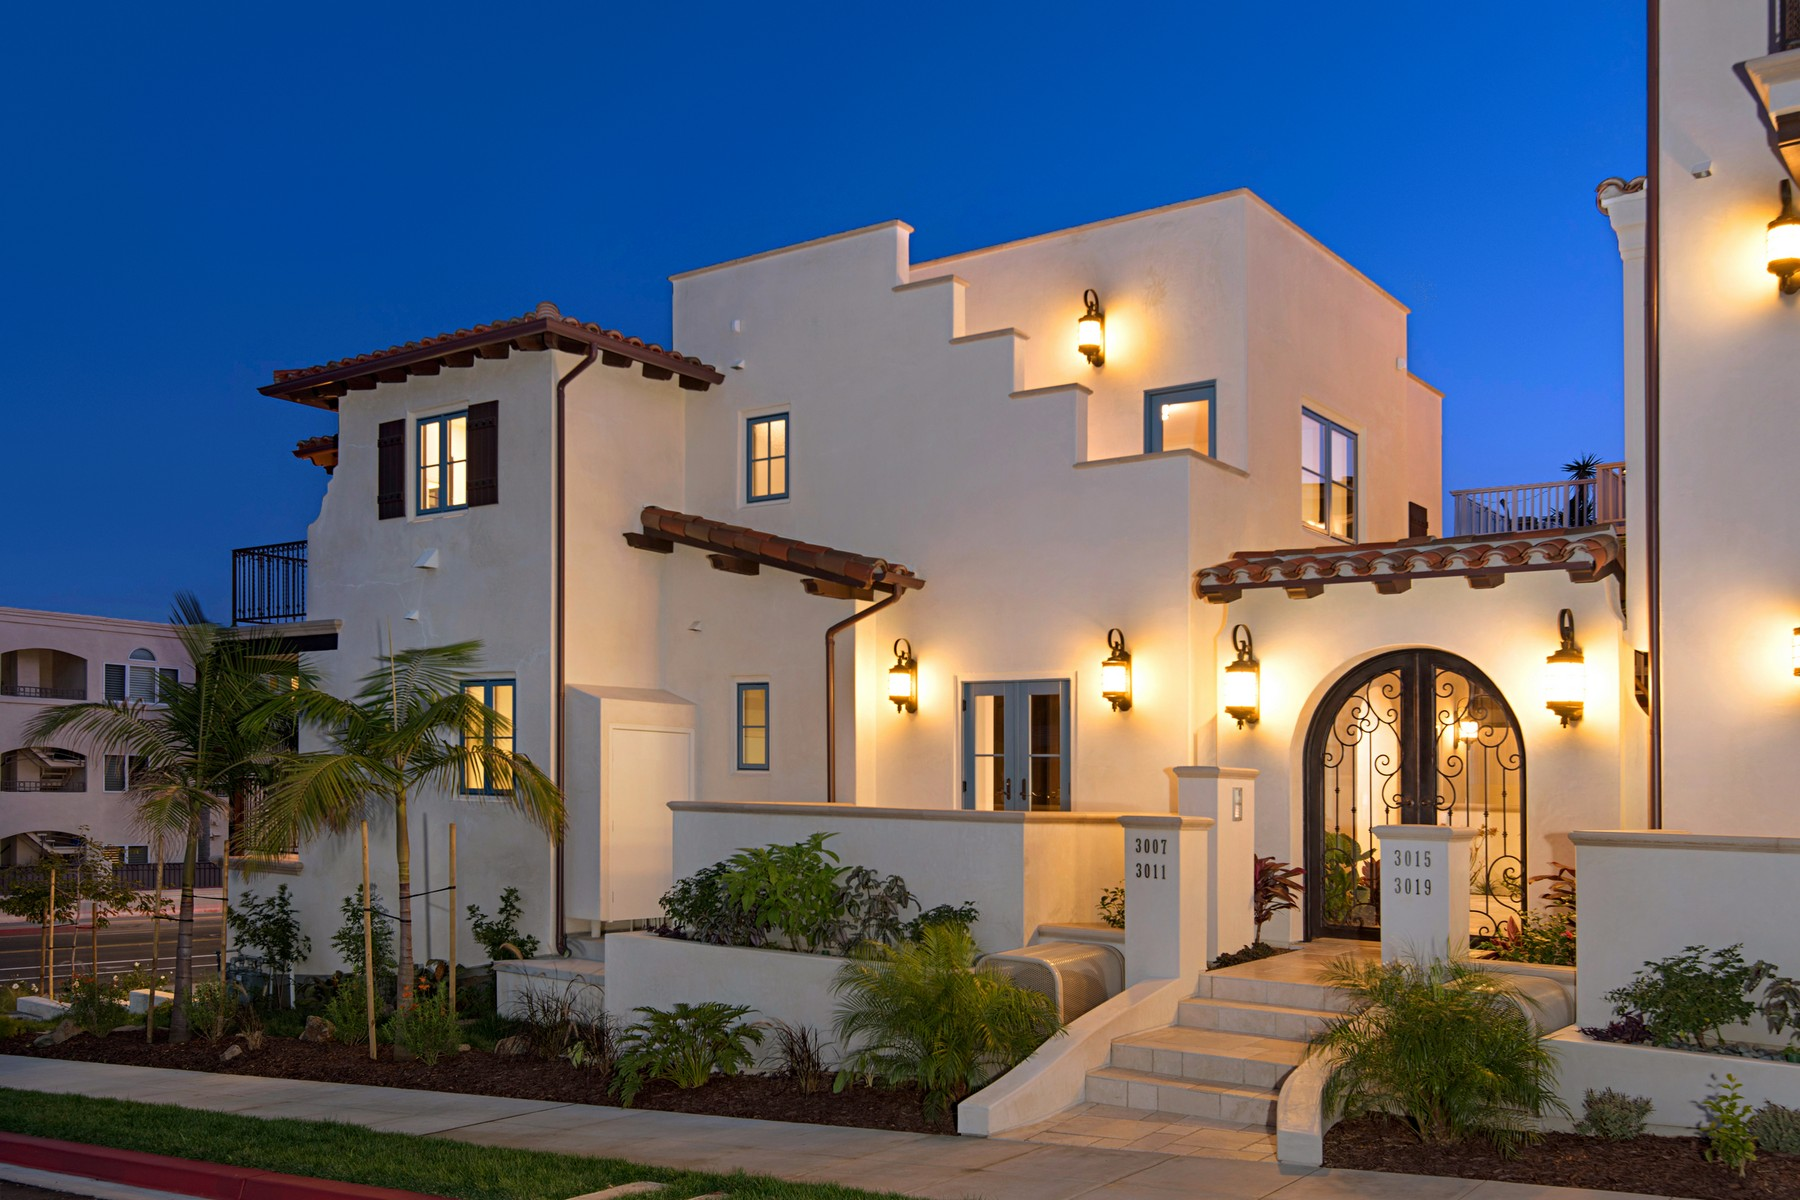 Townhouse for Sale at 3011 Lawrence St. San Diego, California 92106 United States